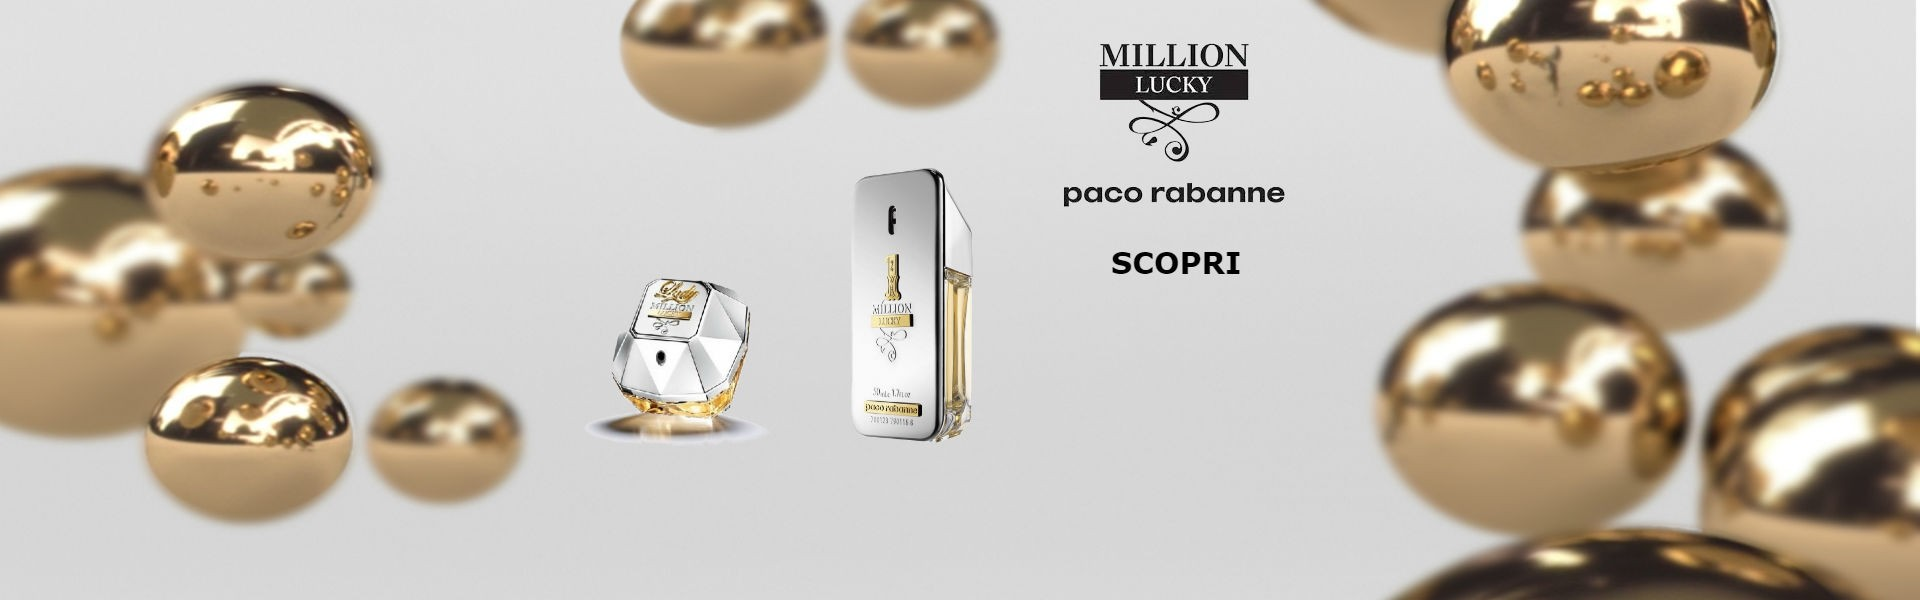 Paco Rabanne Million Lucky